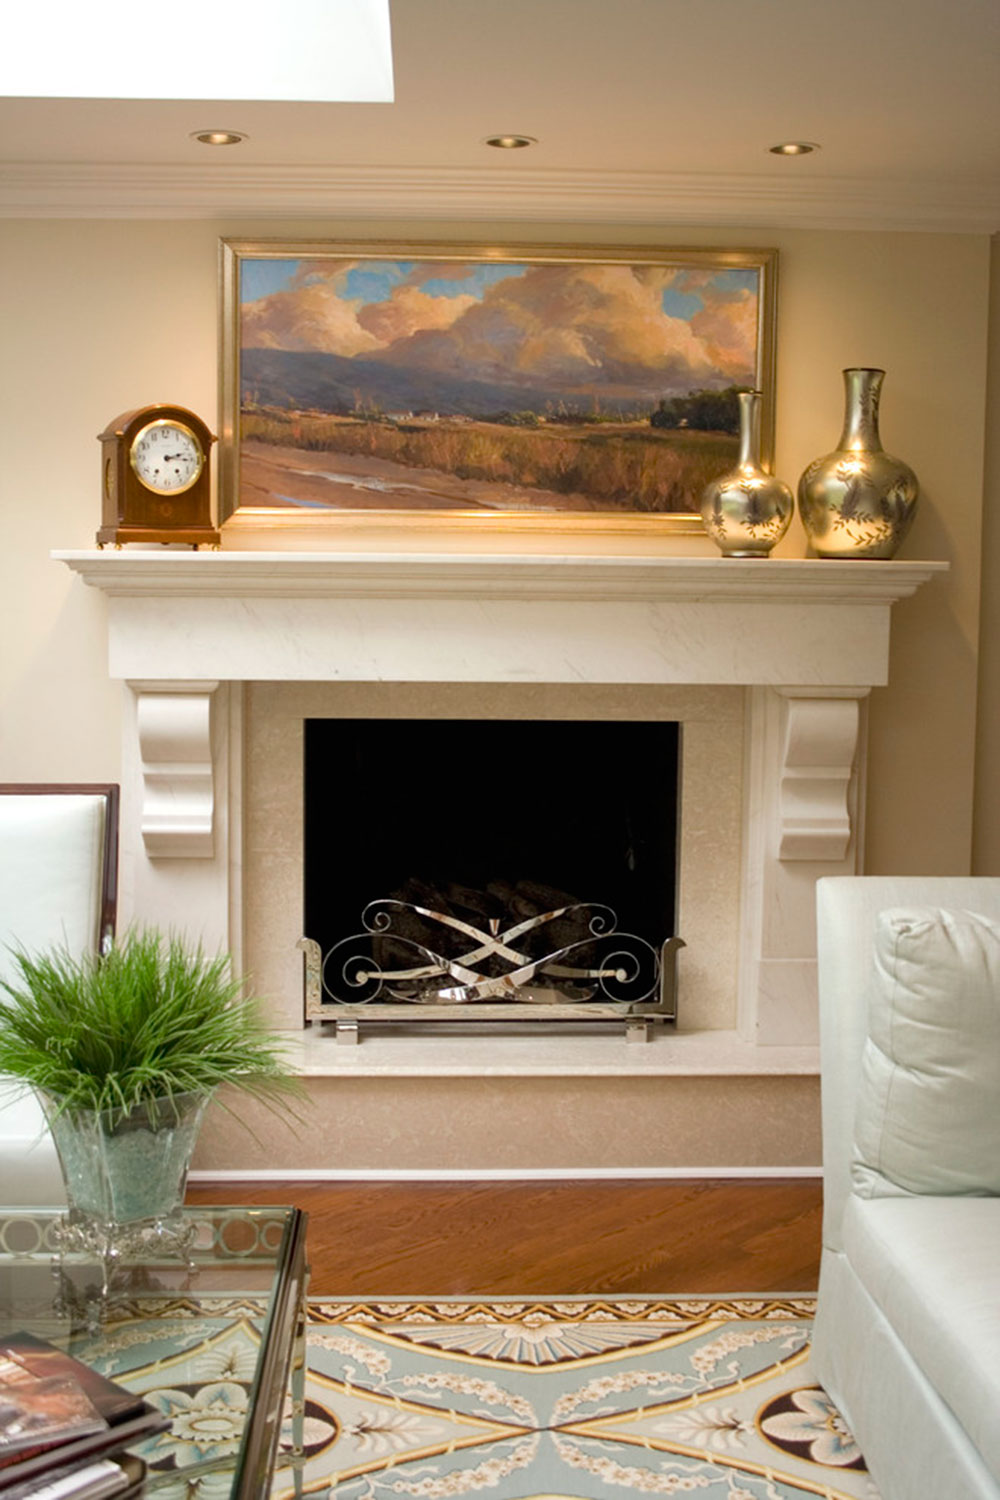 High Quality Fireplace Mantel Decorating Ideas For A Cozy Home2 Fireplace